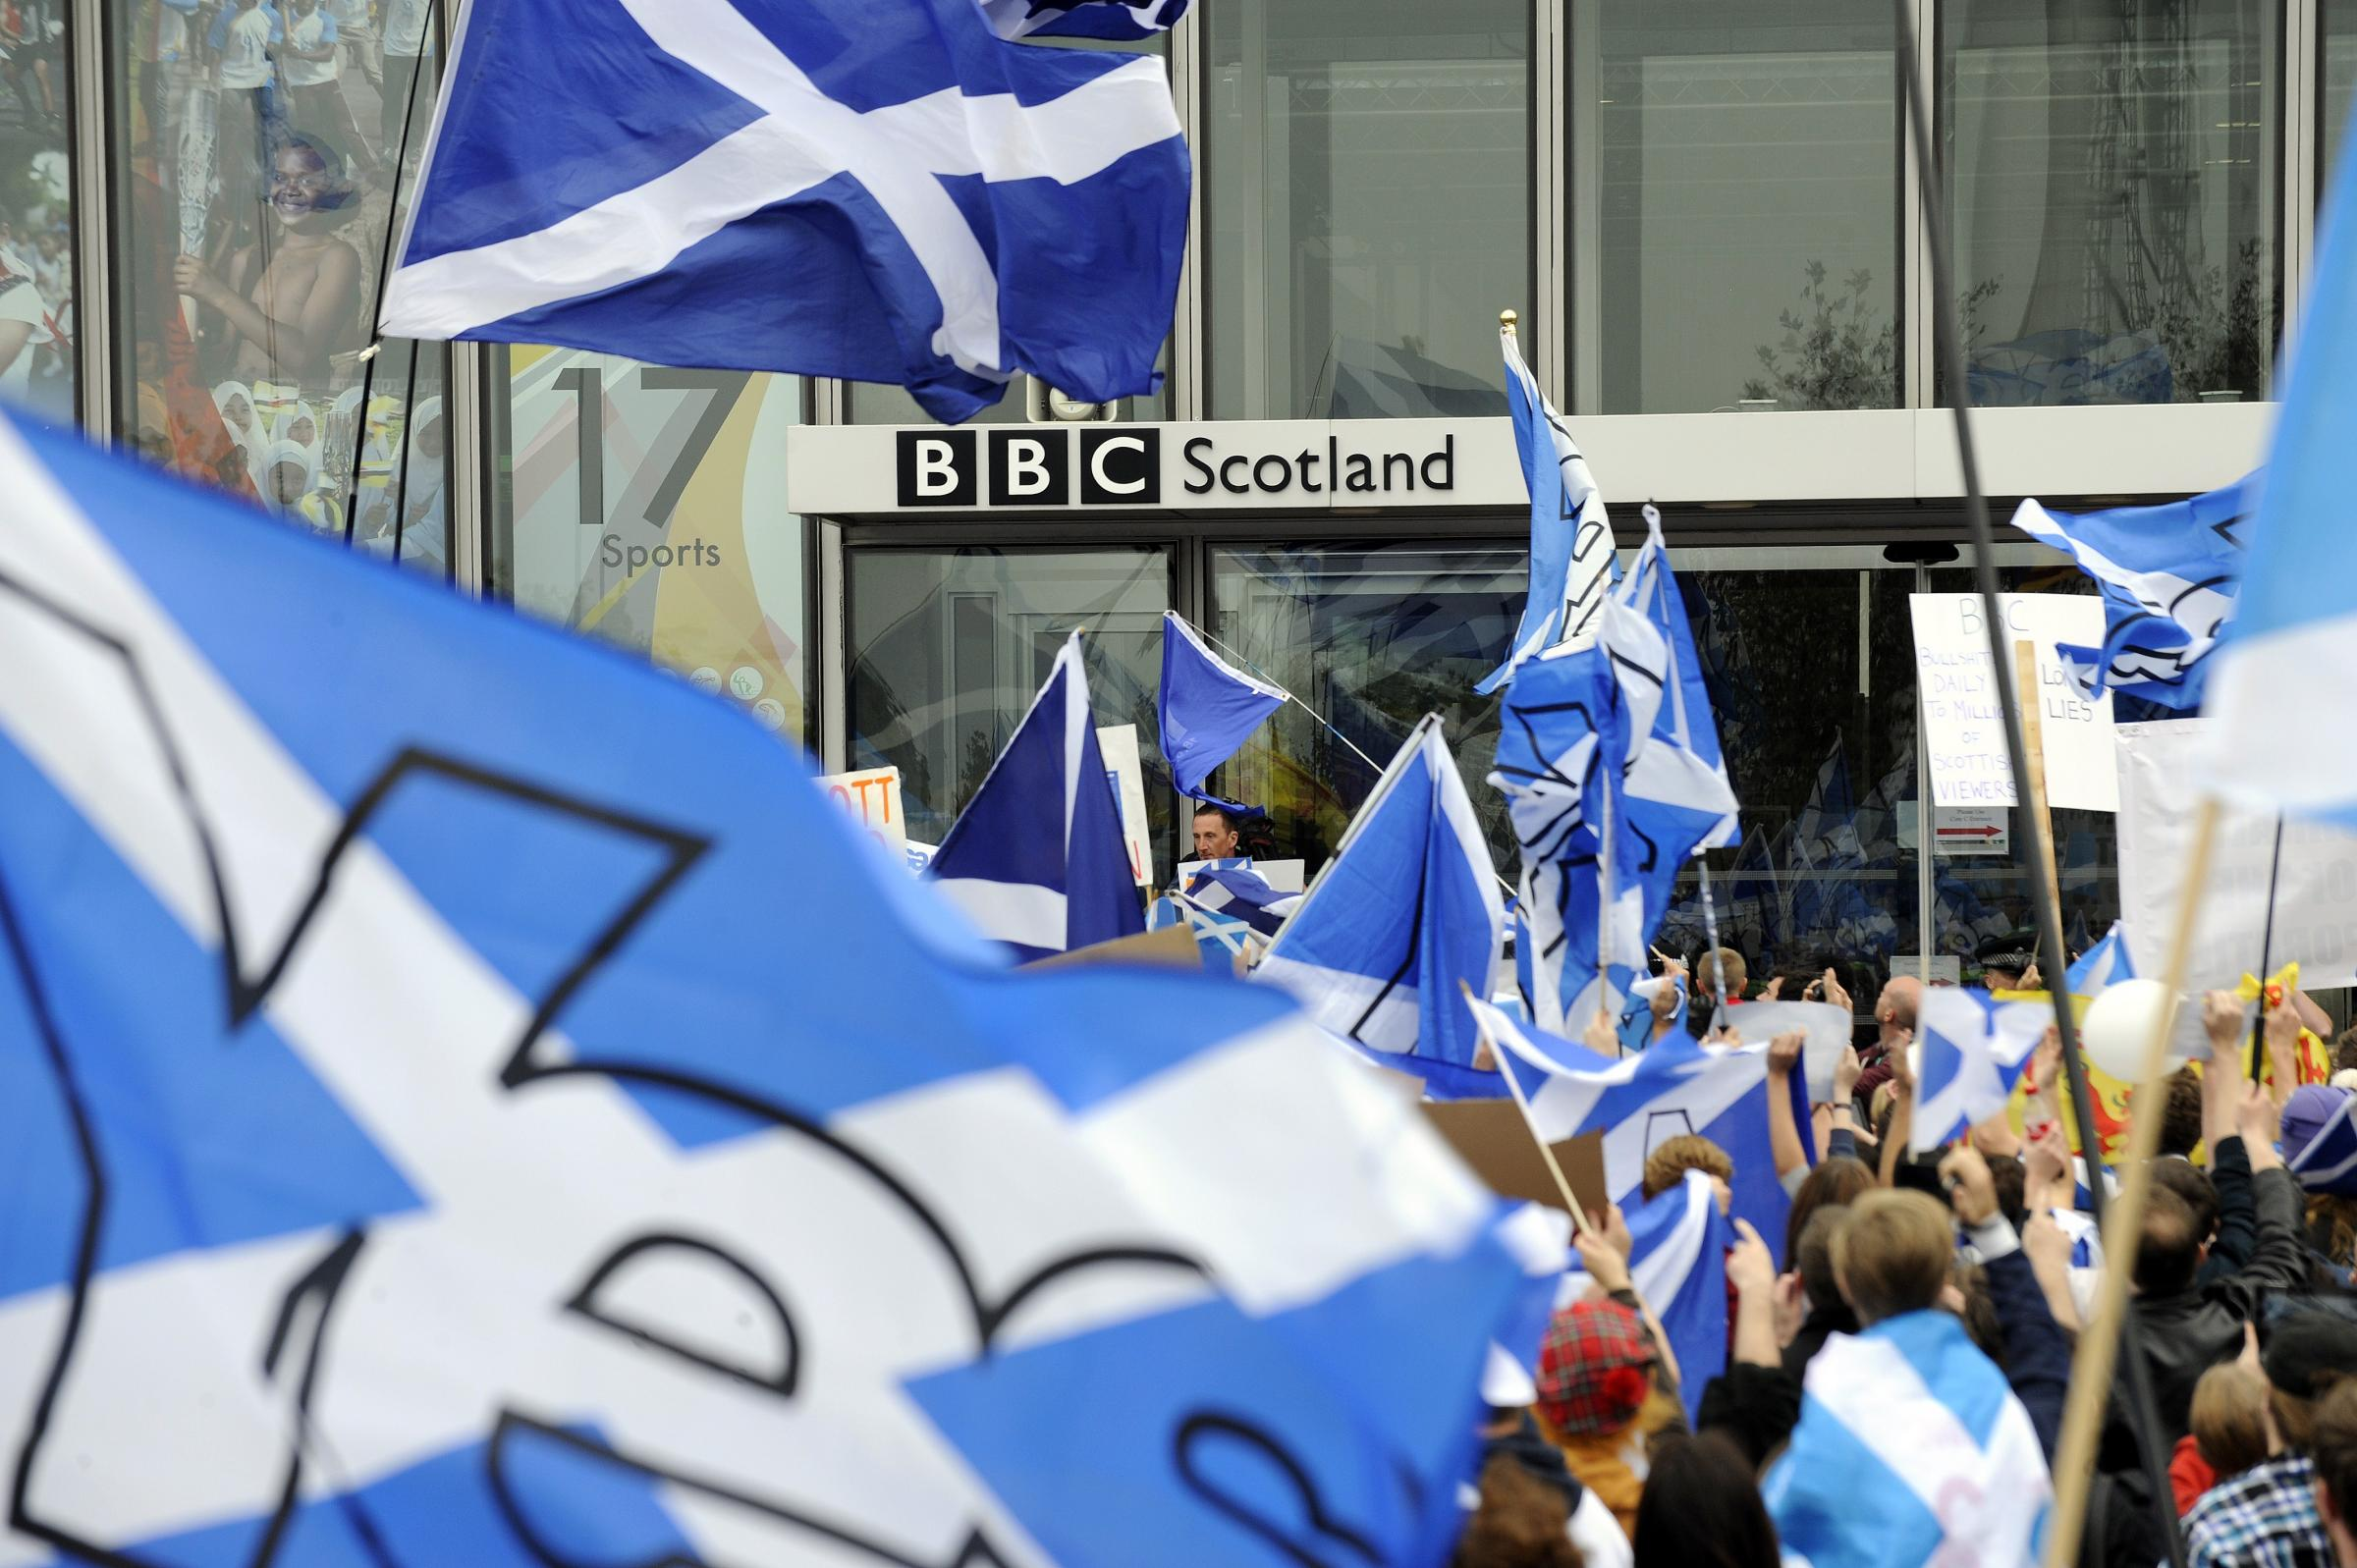 Iain Macwhirter: Here's yet more evidence that Scots were played for fools in 2014